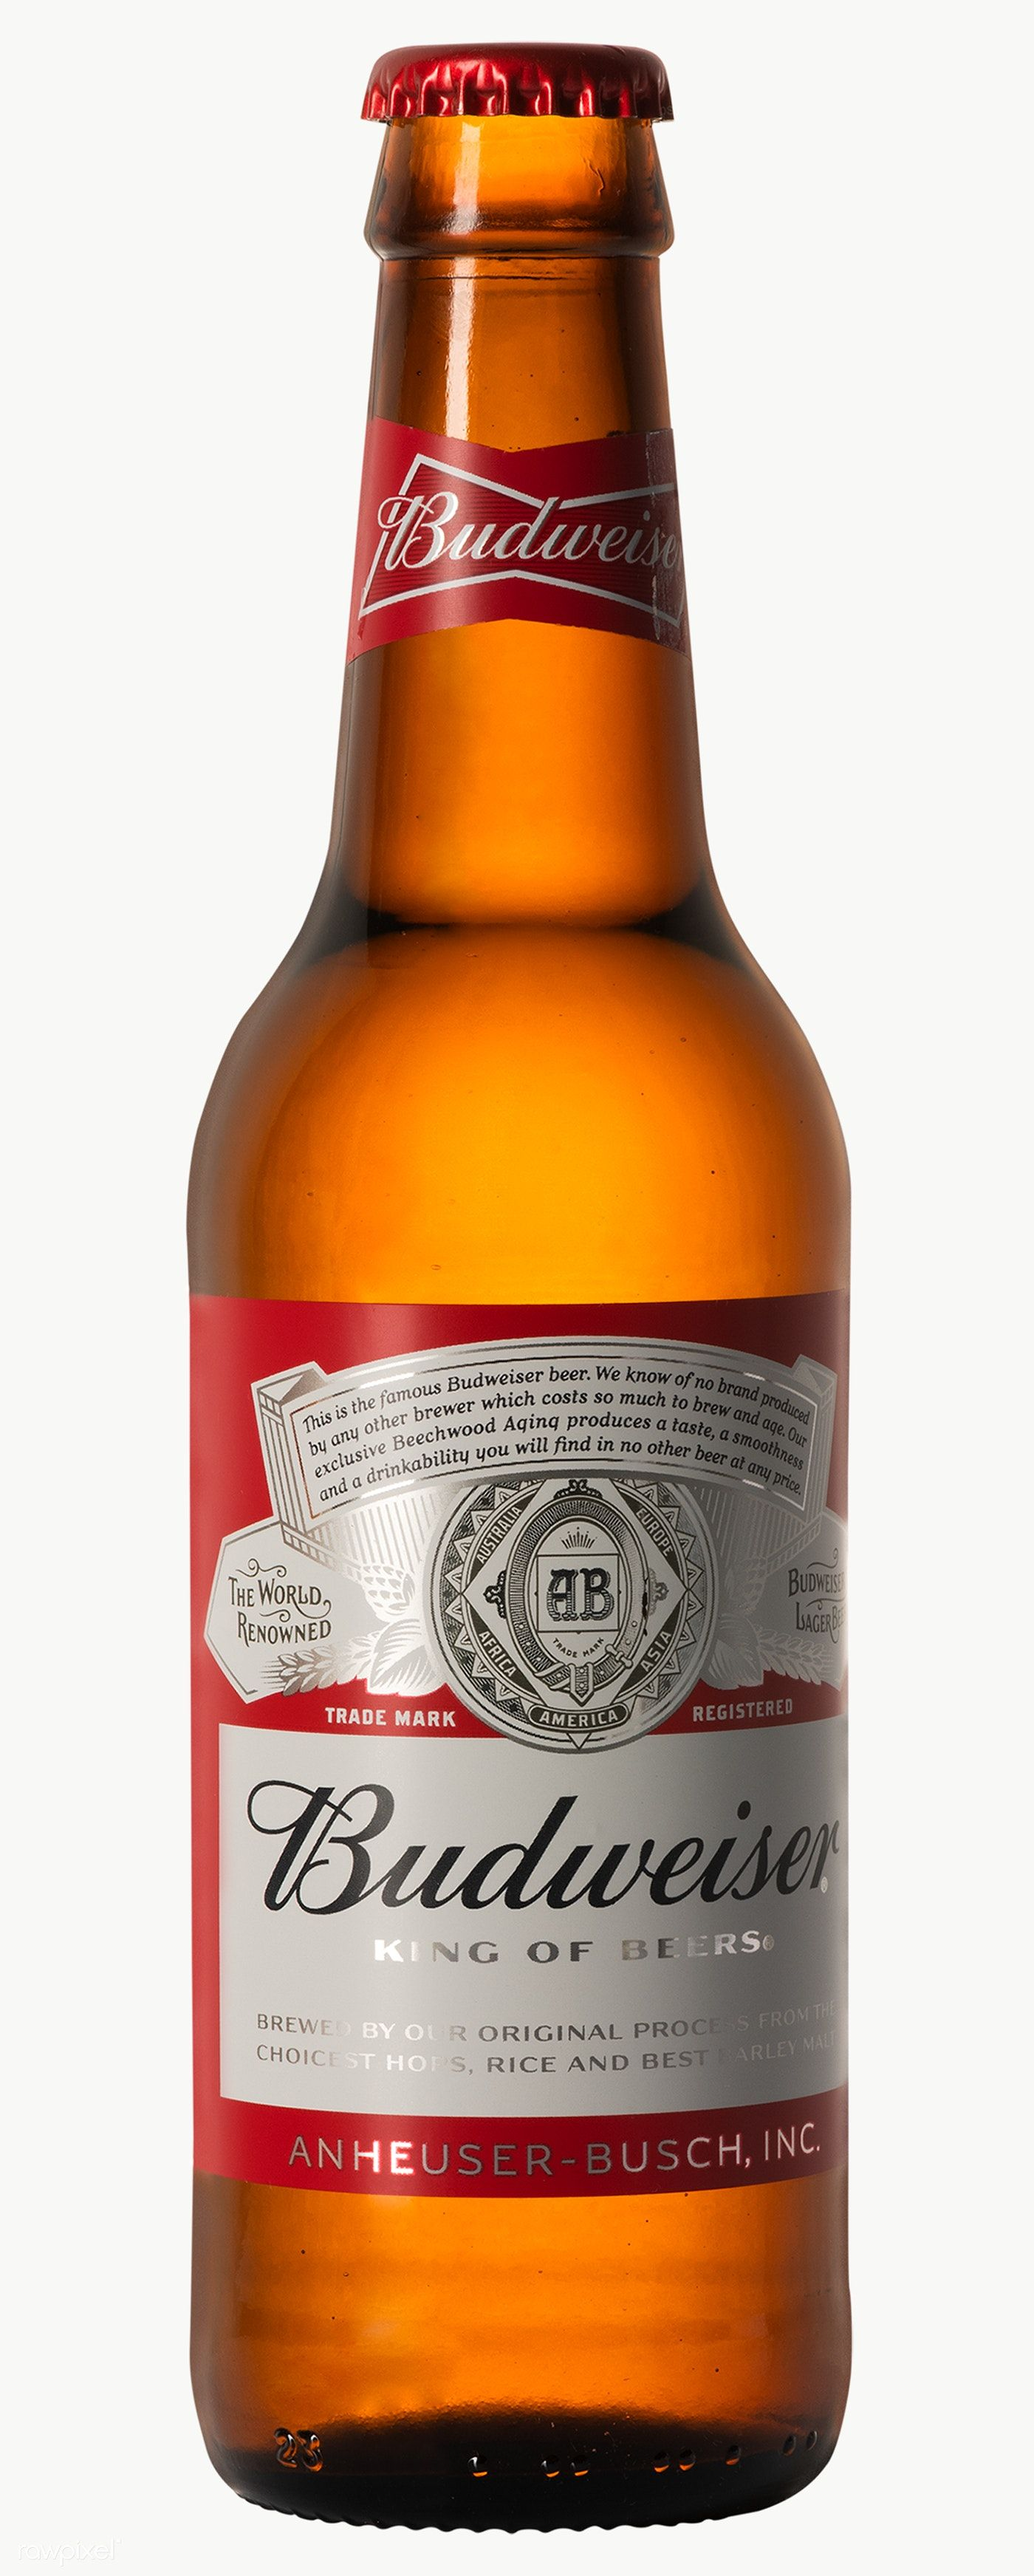 Budweiser King Of Beers In A Glass Bottle January 29 2020 Bangkok Thailand Free Image By Rawpixel Com Jira Budweiser Beer Budweiser Beer